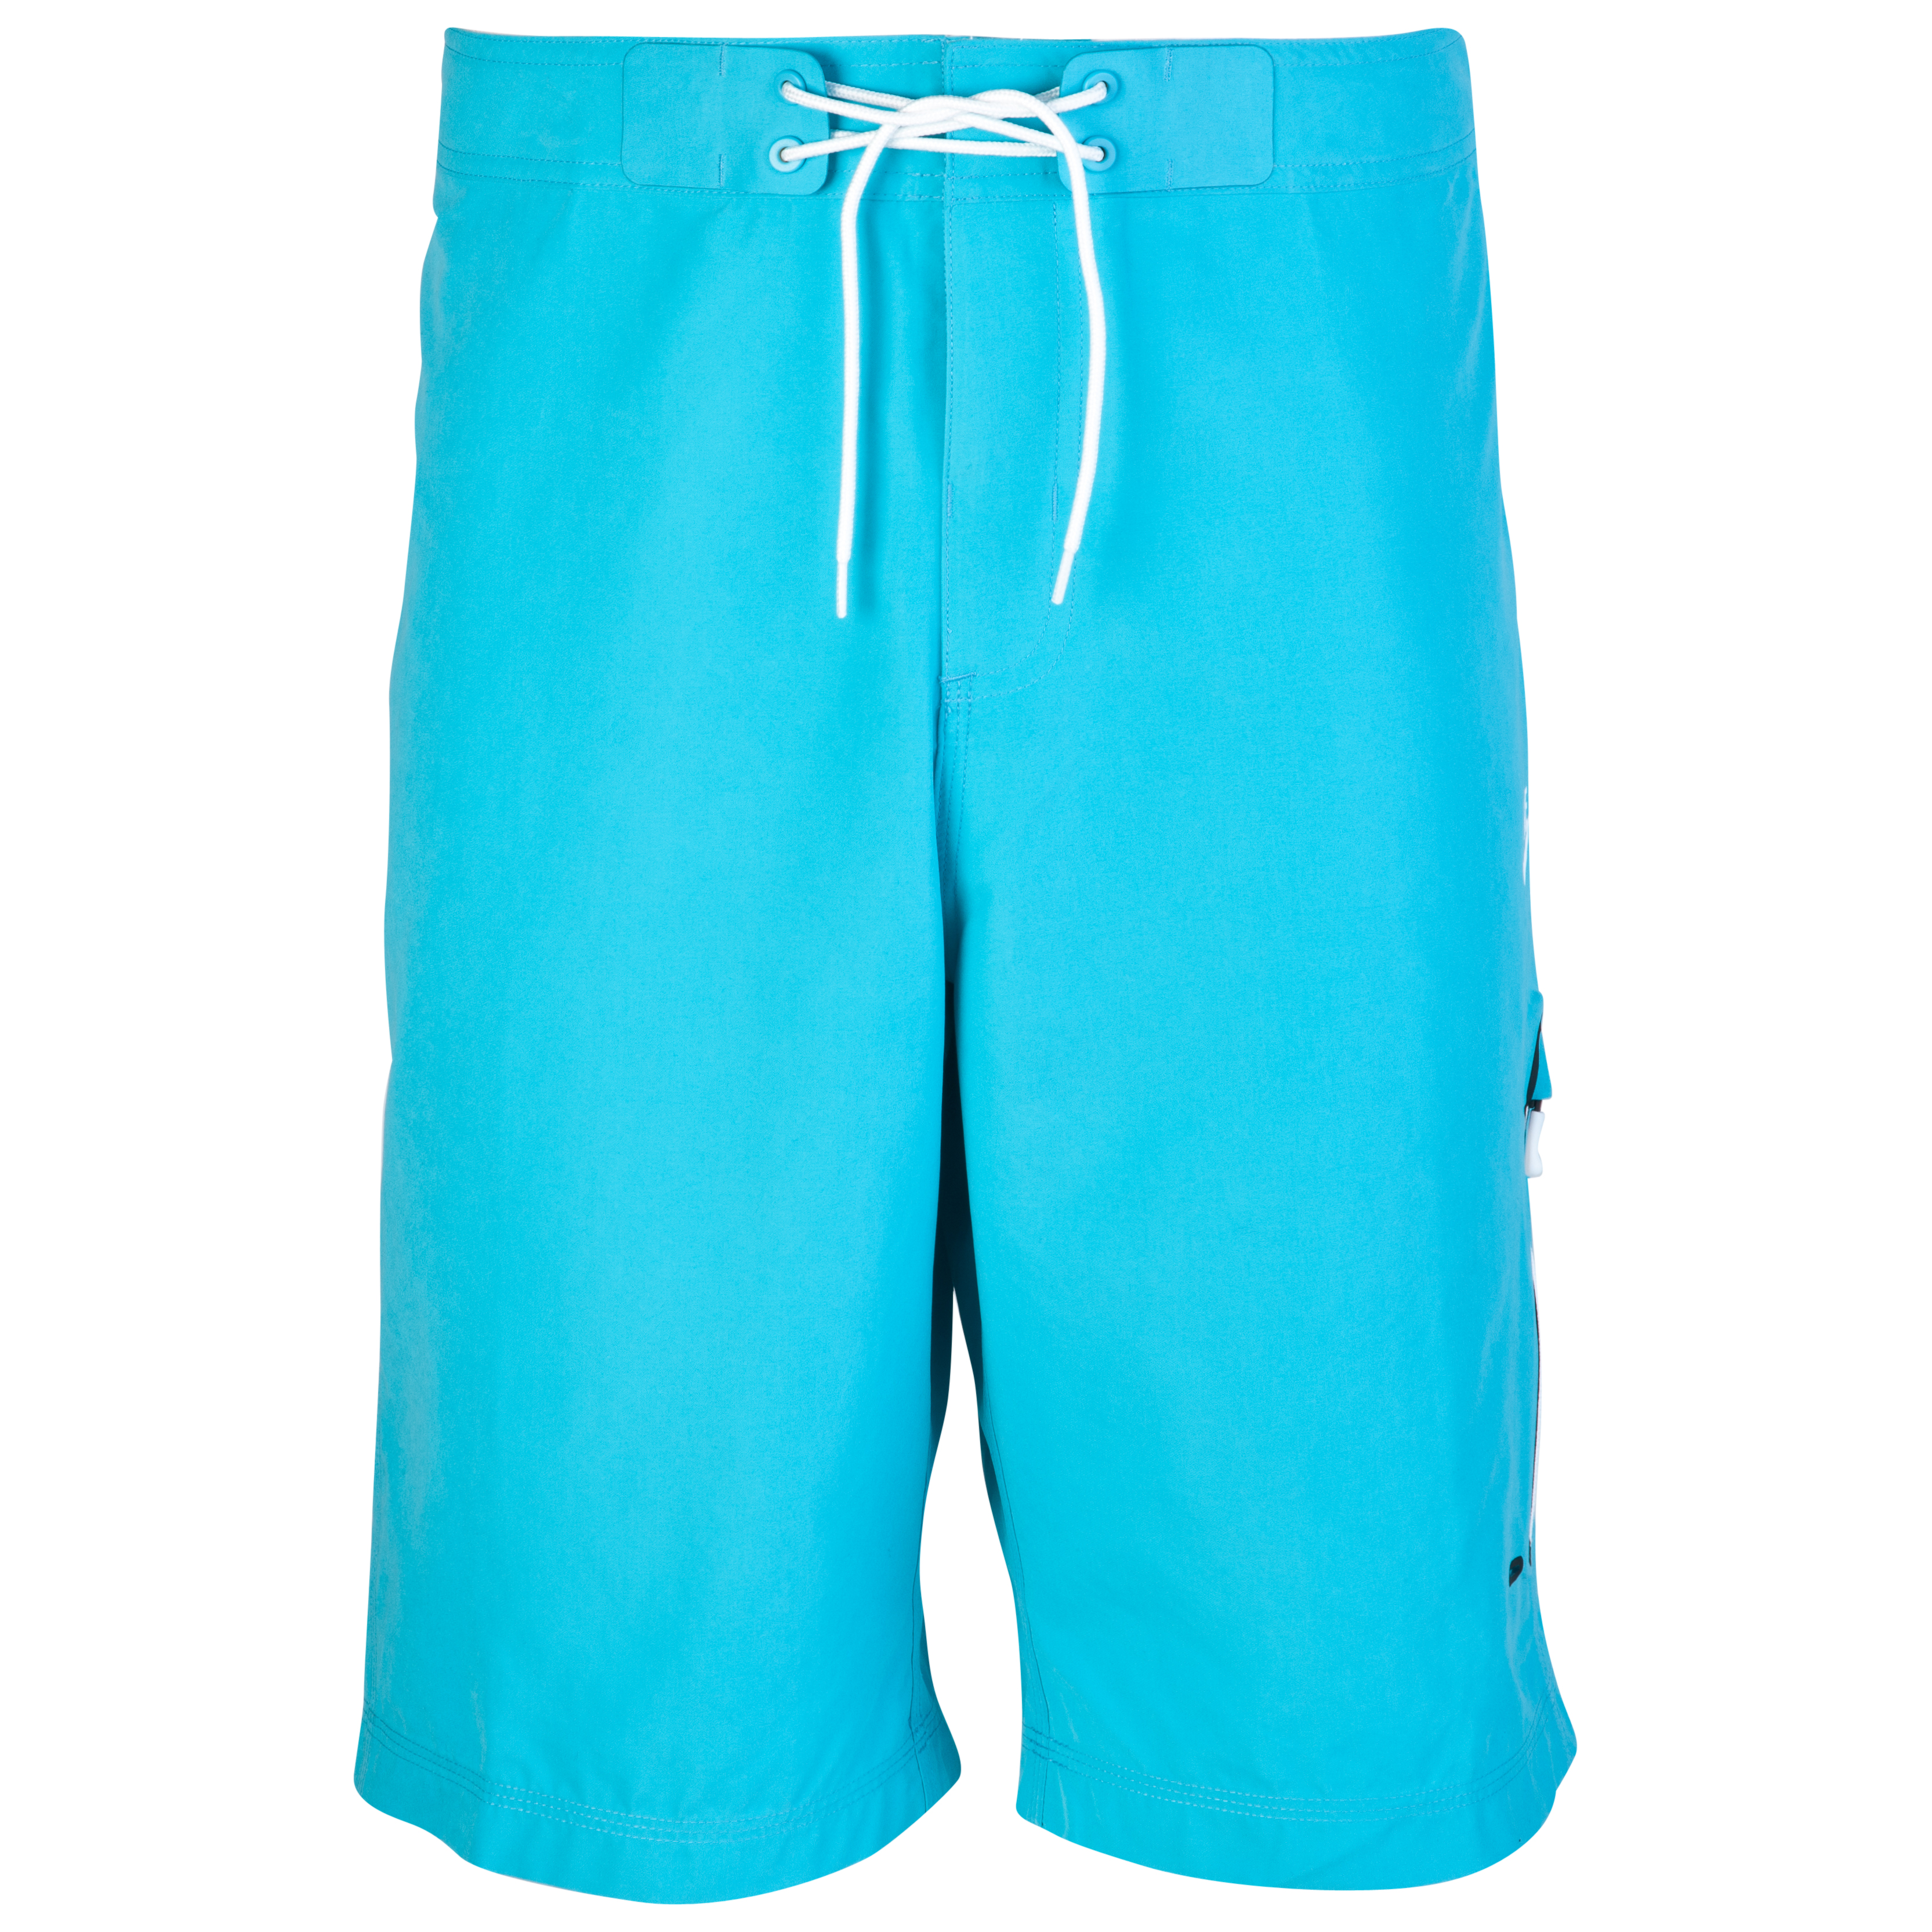 Nike The Prodigy Boardshort - Turquoise Blue/White/White